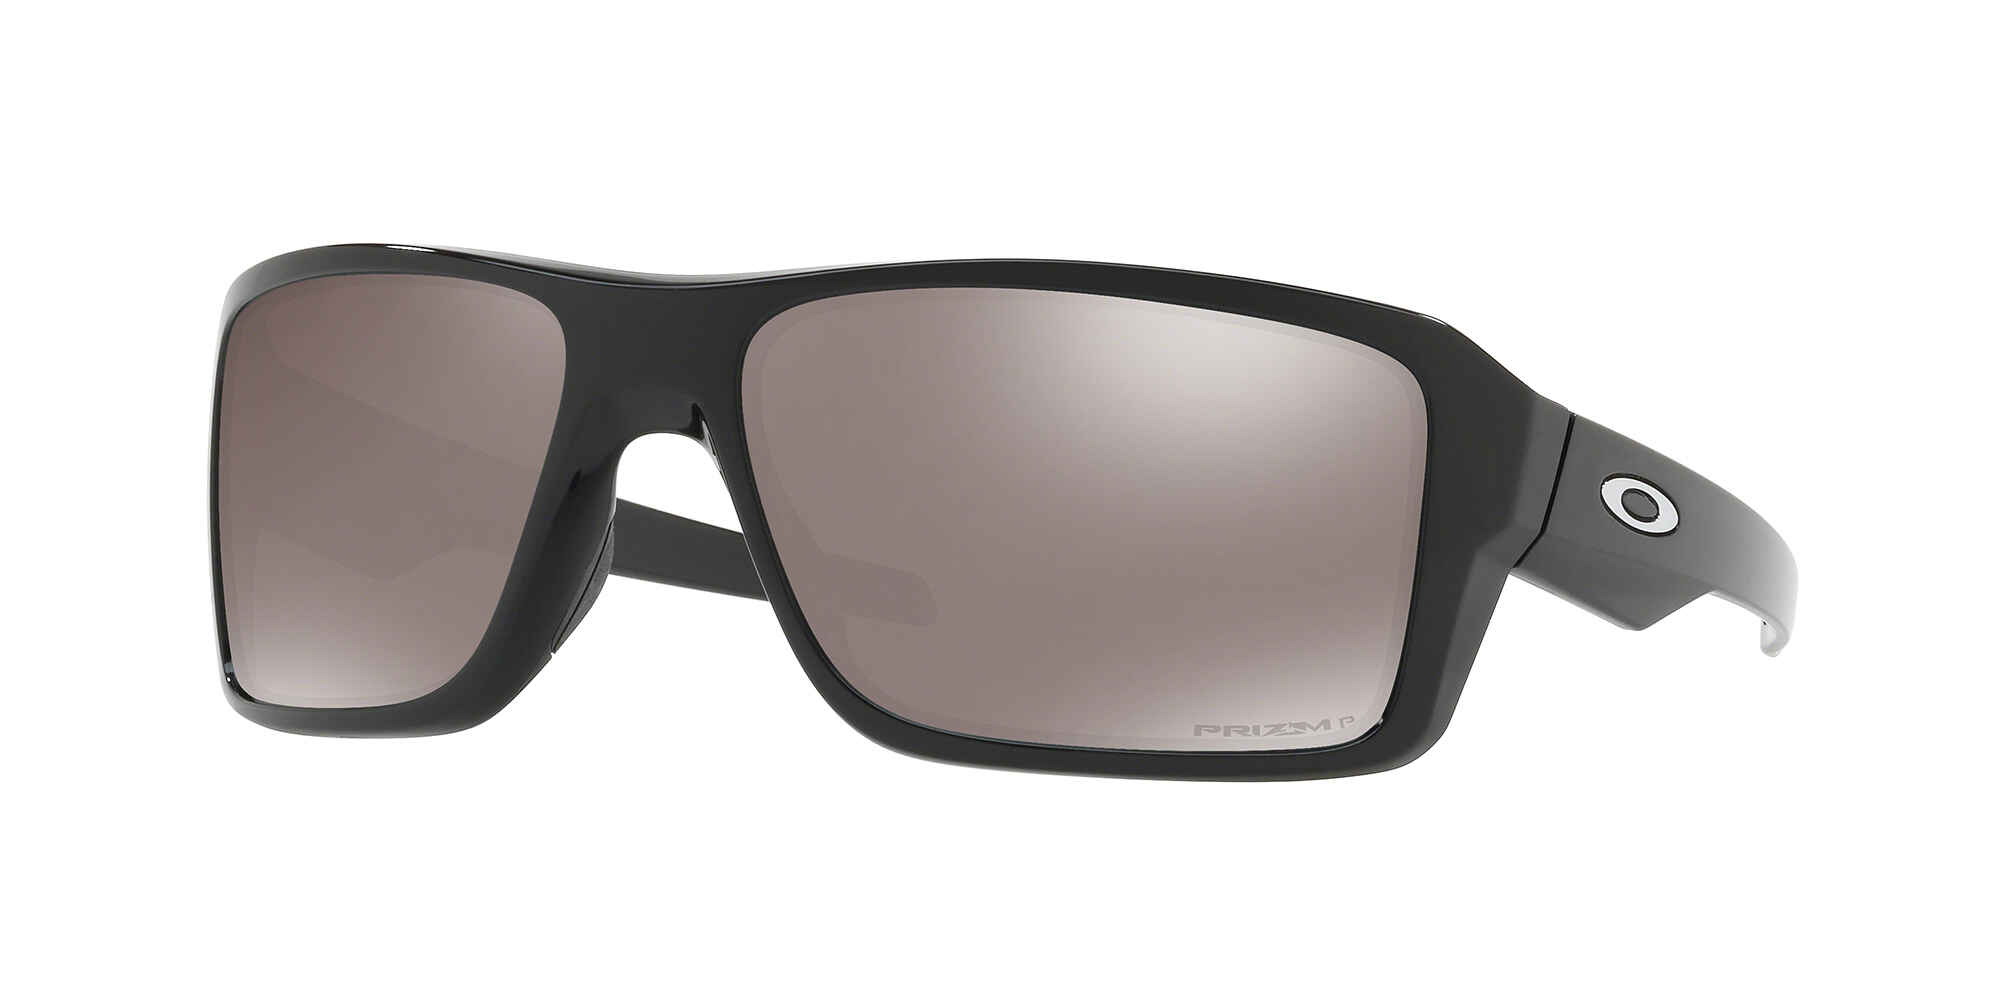 e6575085f2 OAKLEY DOUBLE EDGE - POLISHED BLACK  PRIZM BLACK POLARIZED -  Mens-Accessories   Sequence Surf Shop - OAKLEY S18